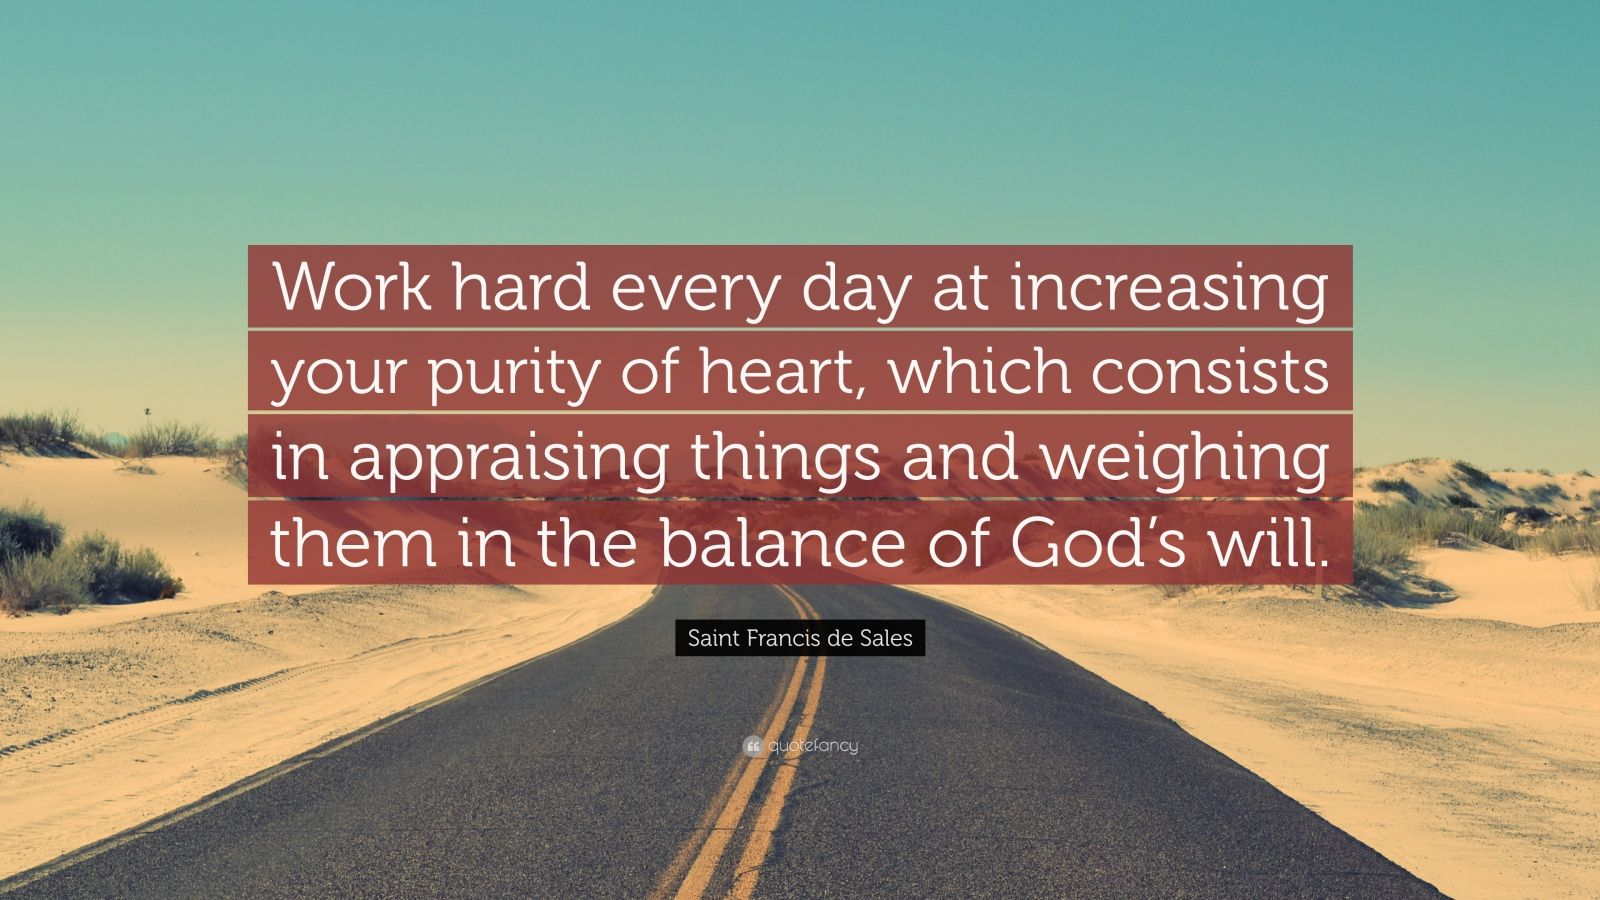 """Saint Francis de Sales Quote: """"Work hard every day at increasing your purity of heart, which consists in appraising things and weighing them in the balance of God's will."""""""